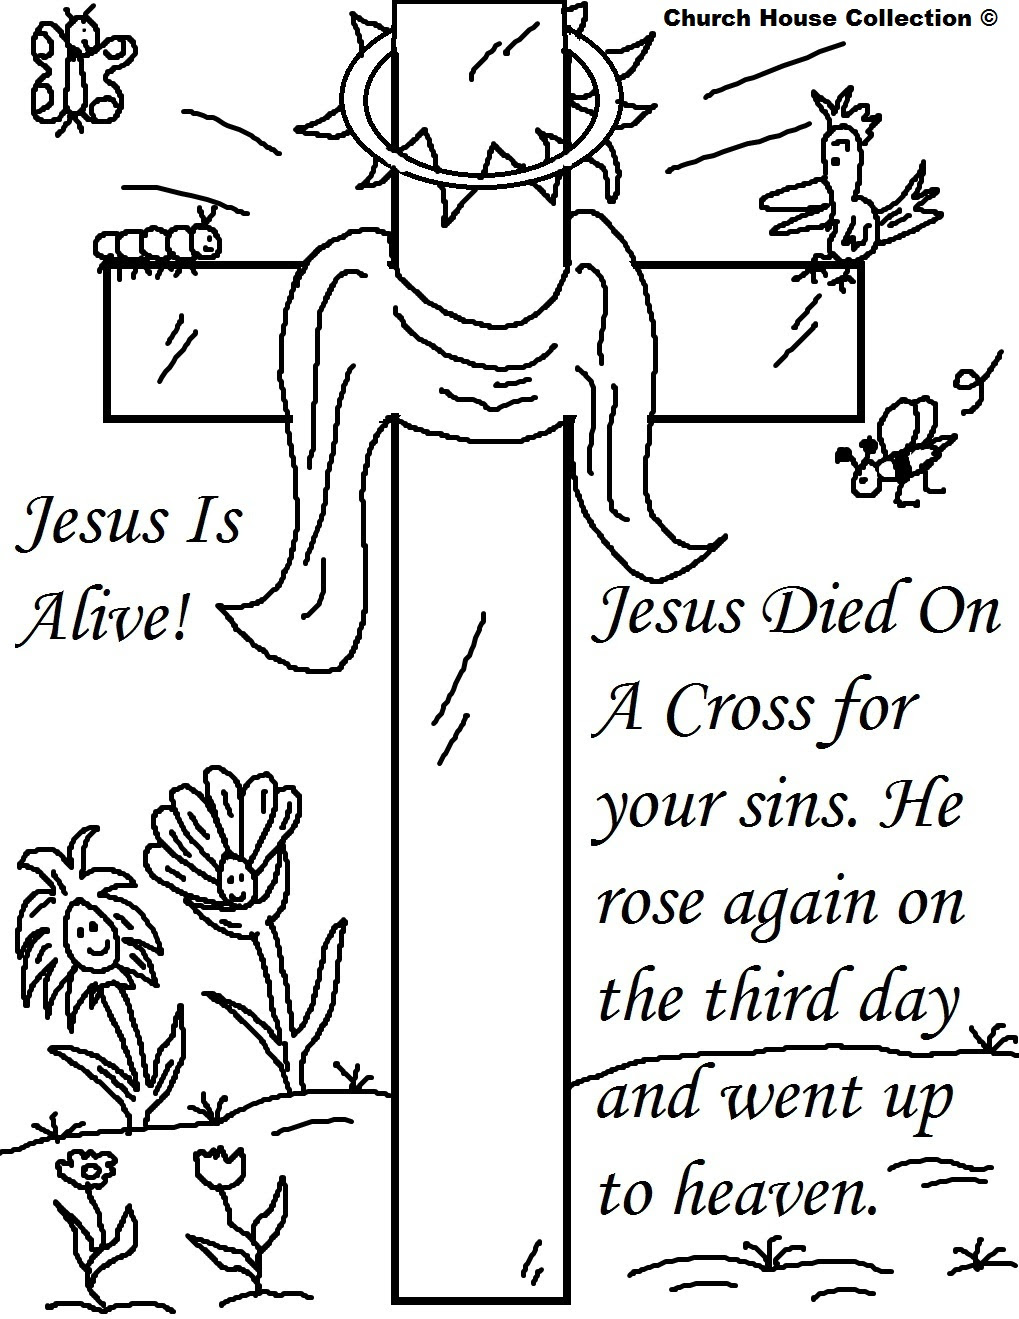 9000 Top Free Bible Coloring Pages Easter Images & Pictures In HD